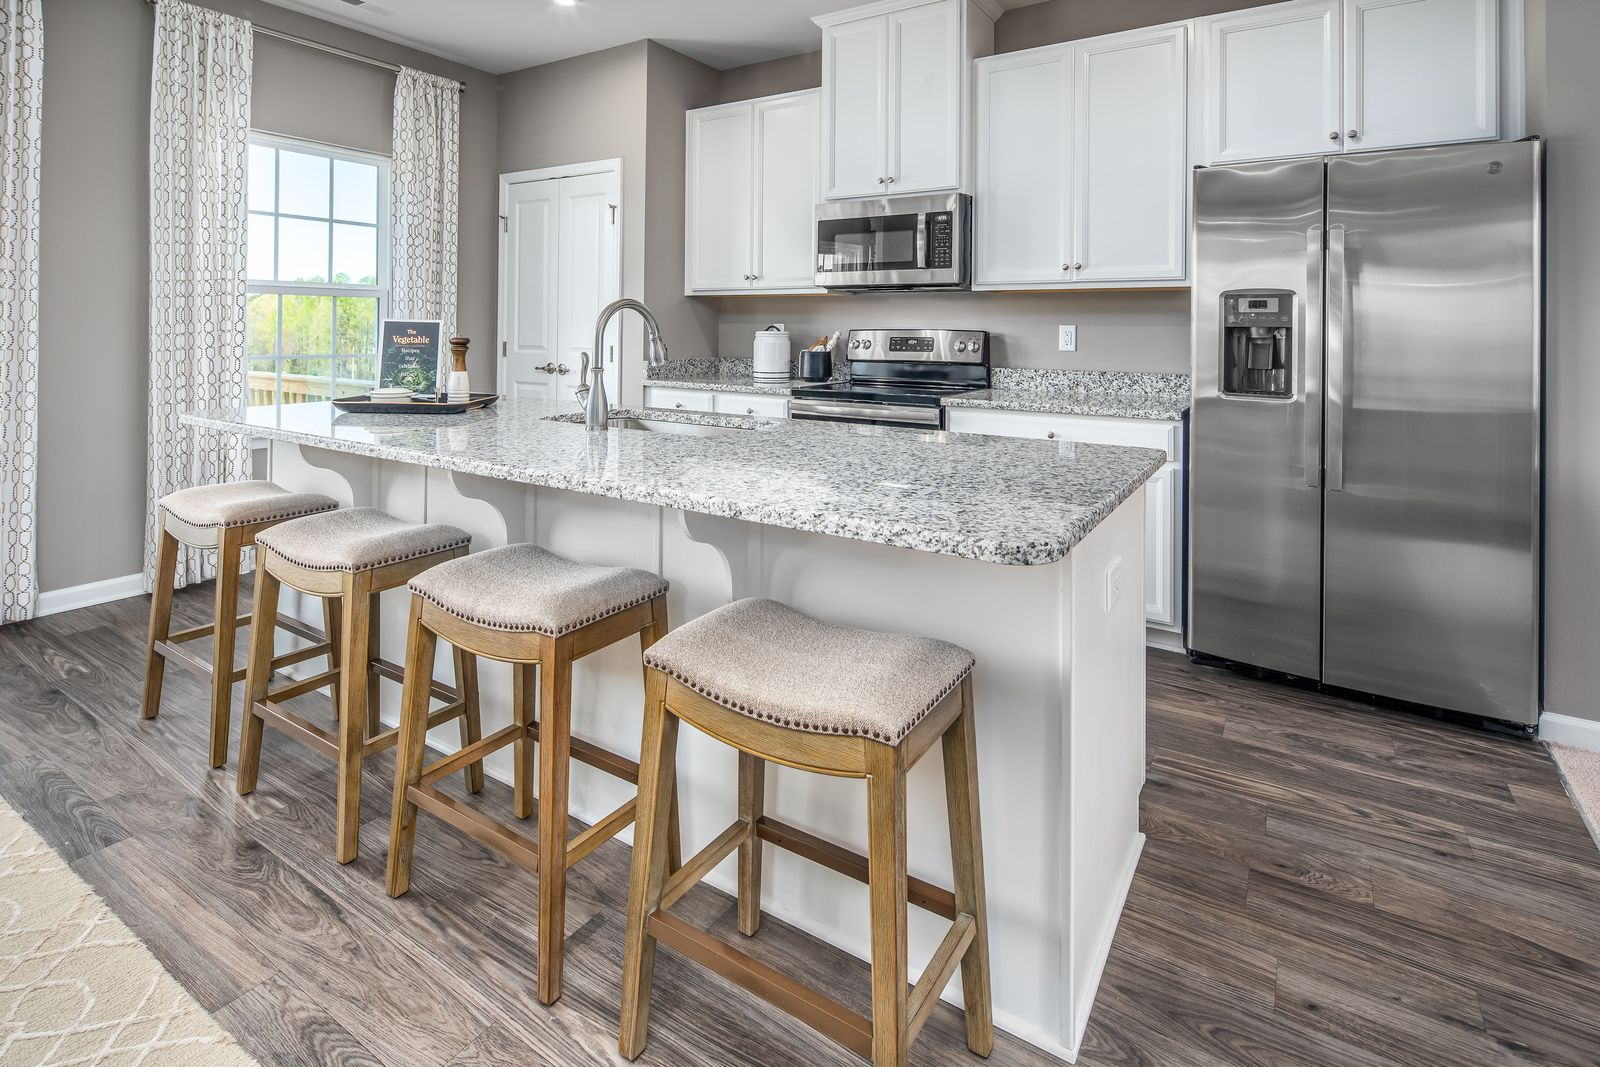 Kitchen featured in the Mozart By Ryan Homes in Philadelphia, NJ